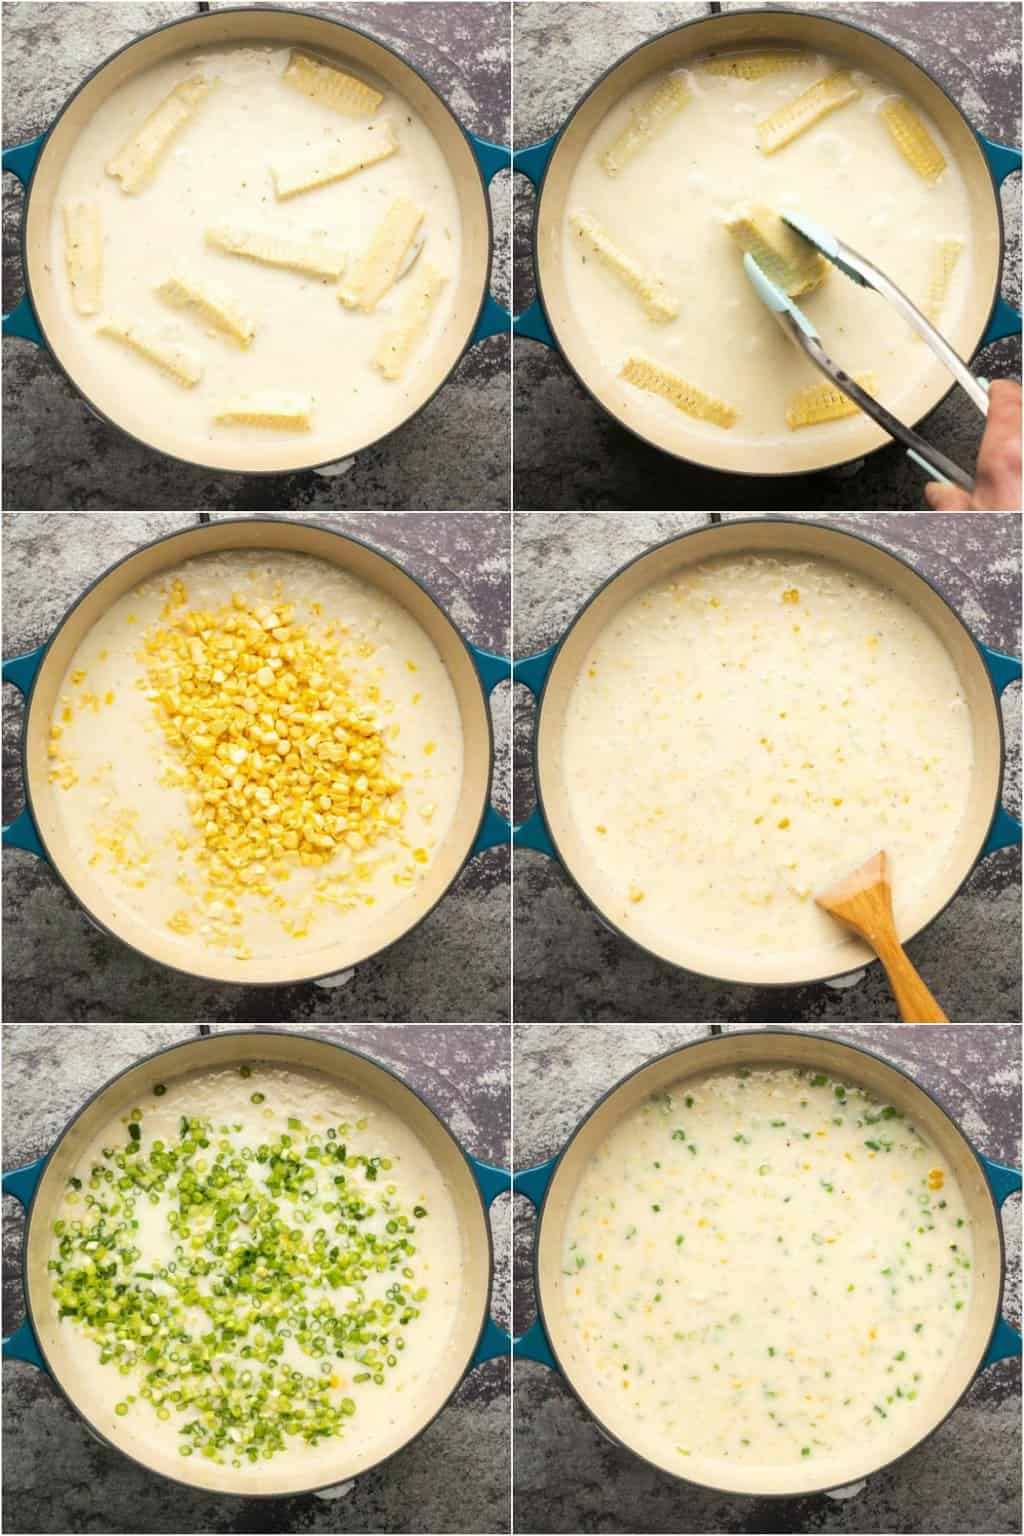 Step by step process photo collage of making vegan corn chowder.